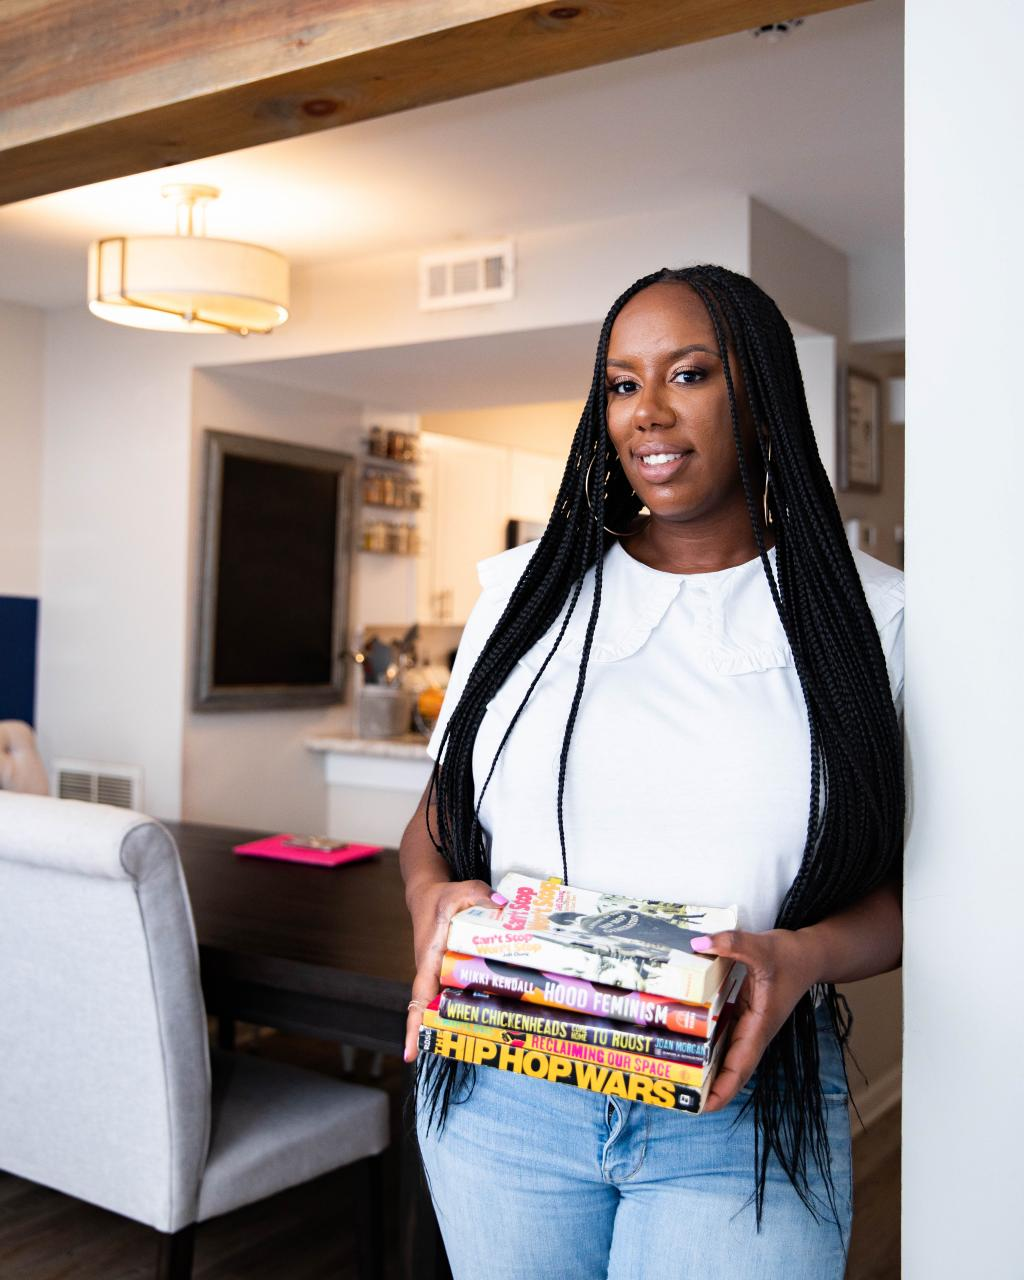 Photograph of Kyesha Jennings, a smiling Black woman holding a stack of books about Hip-Hop